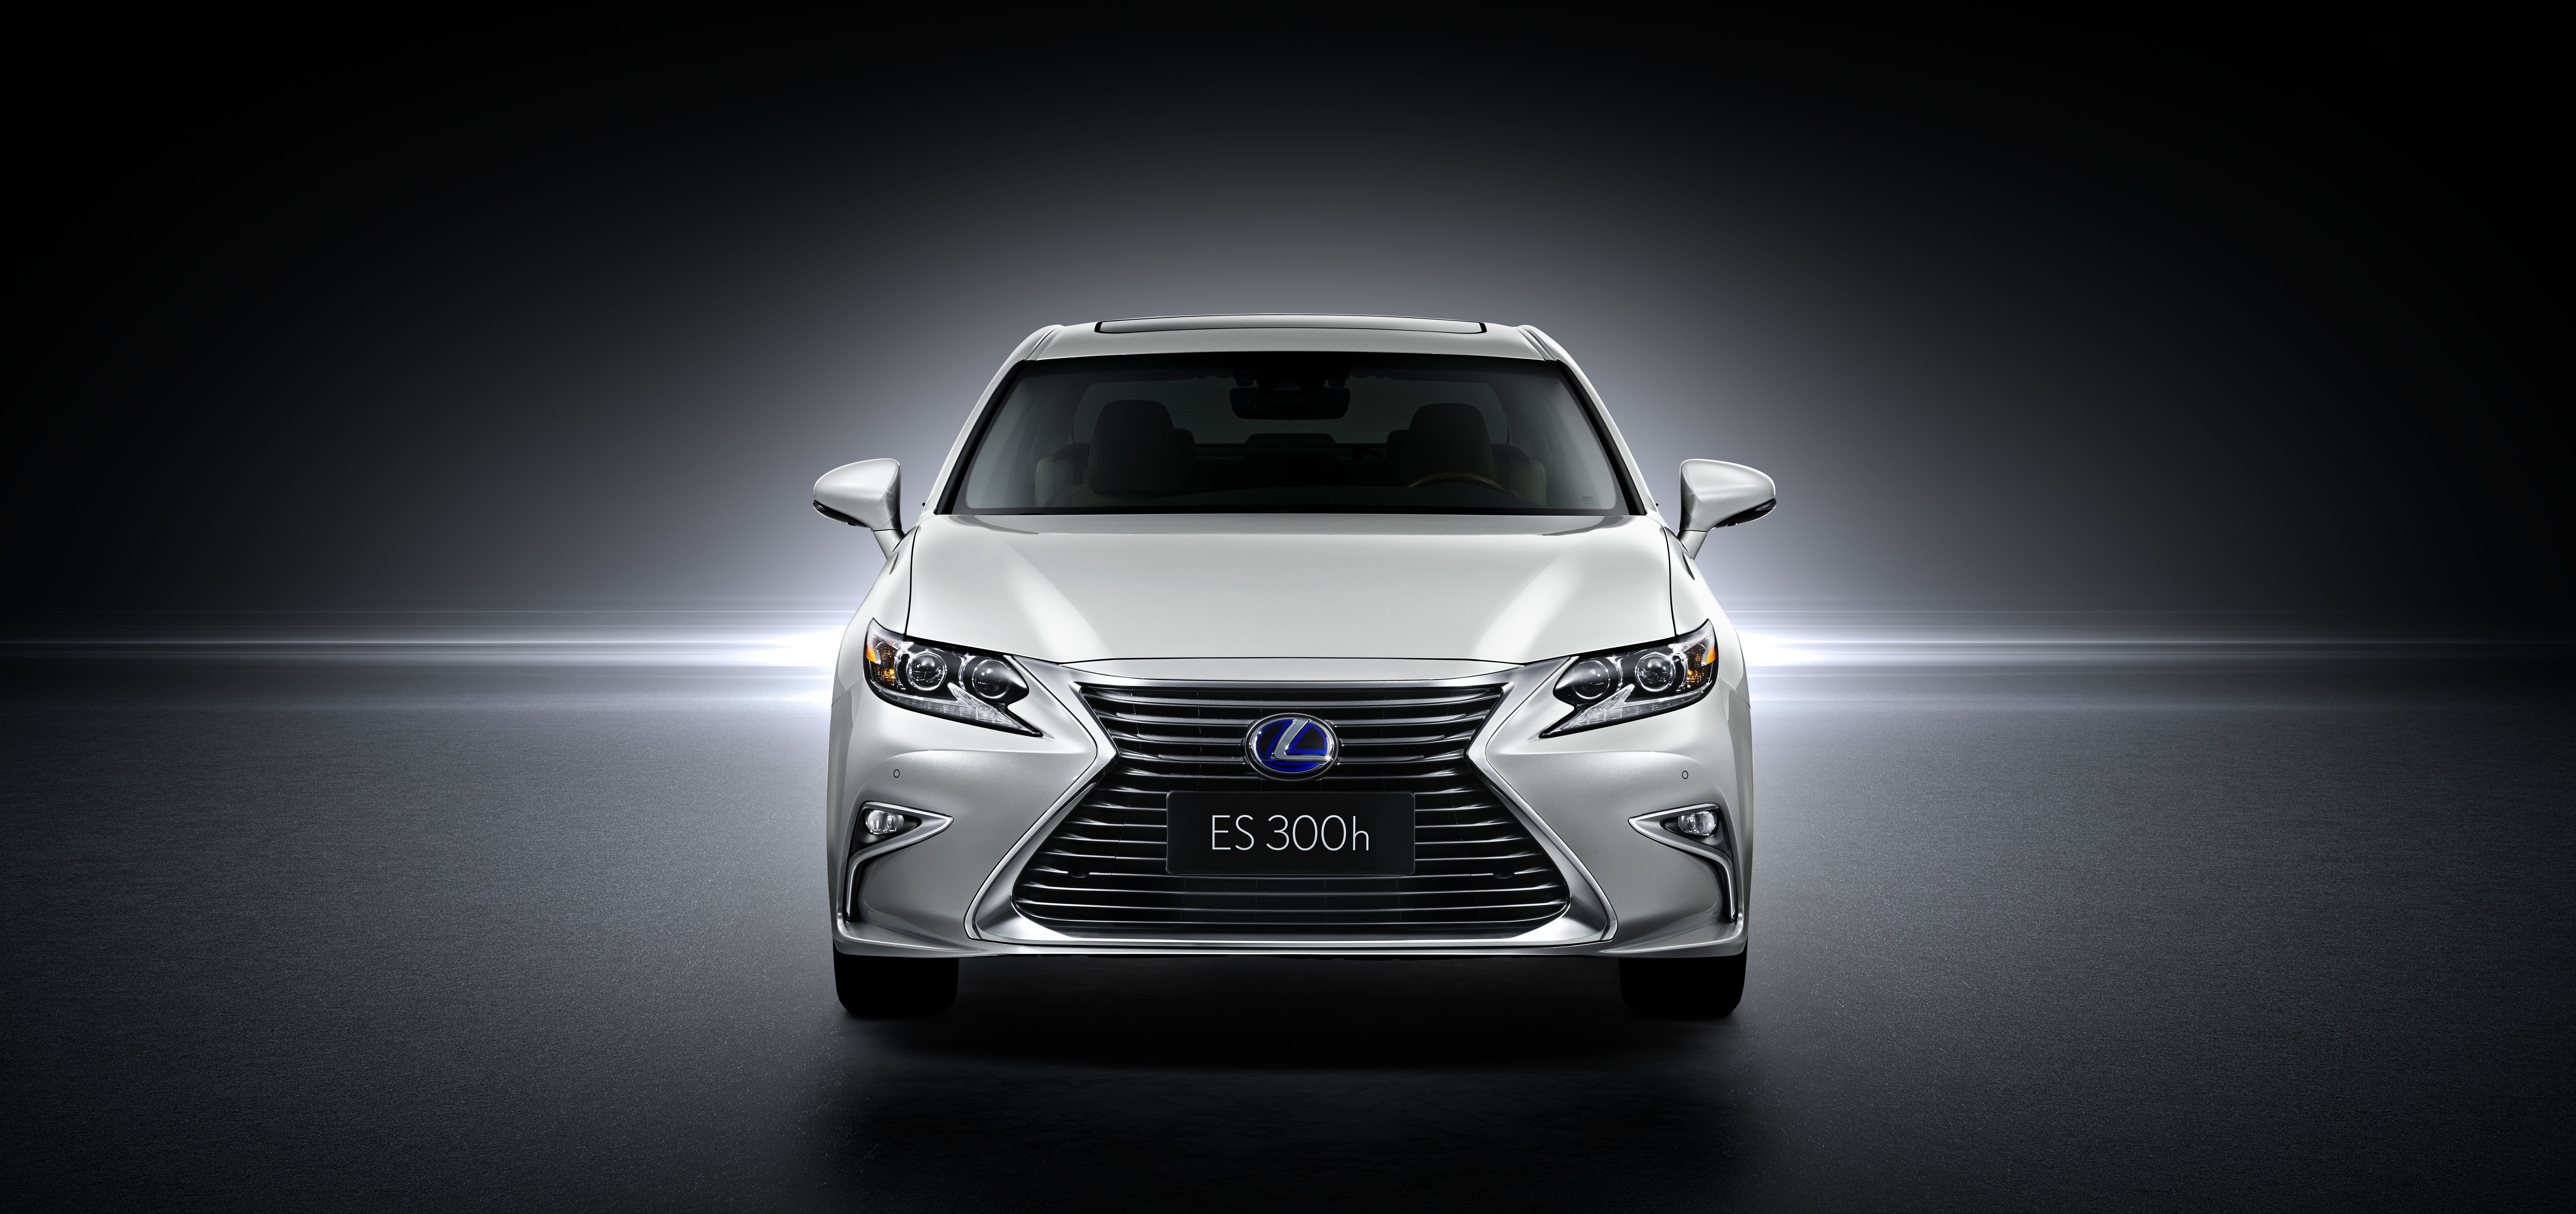 Refreshed For 2016, The New Lexus ES Fuses Striking Design With Ultimate Refinement And Safety